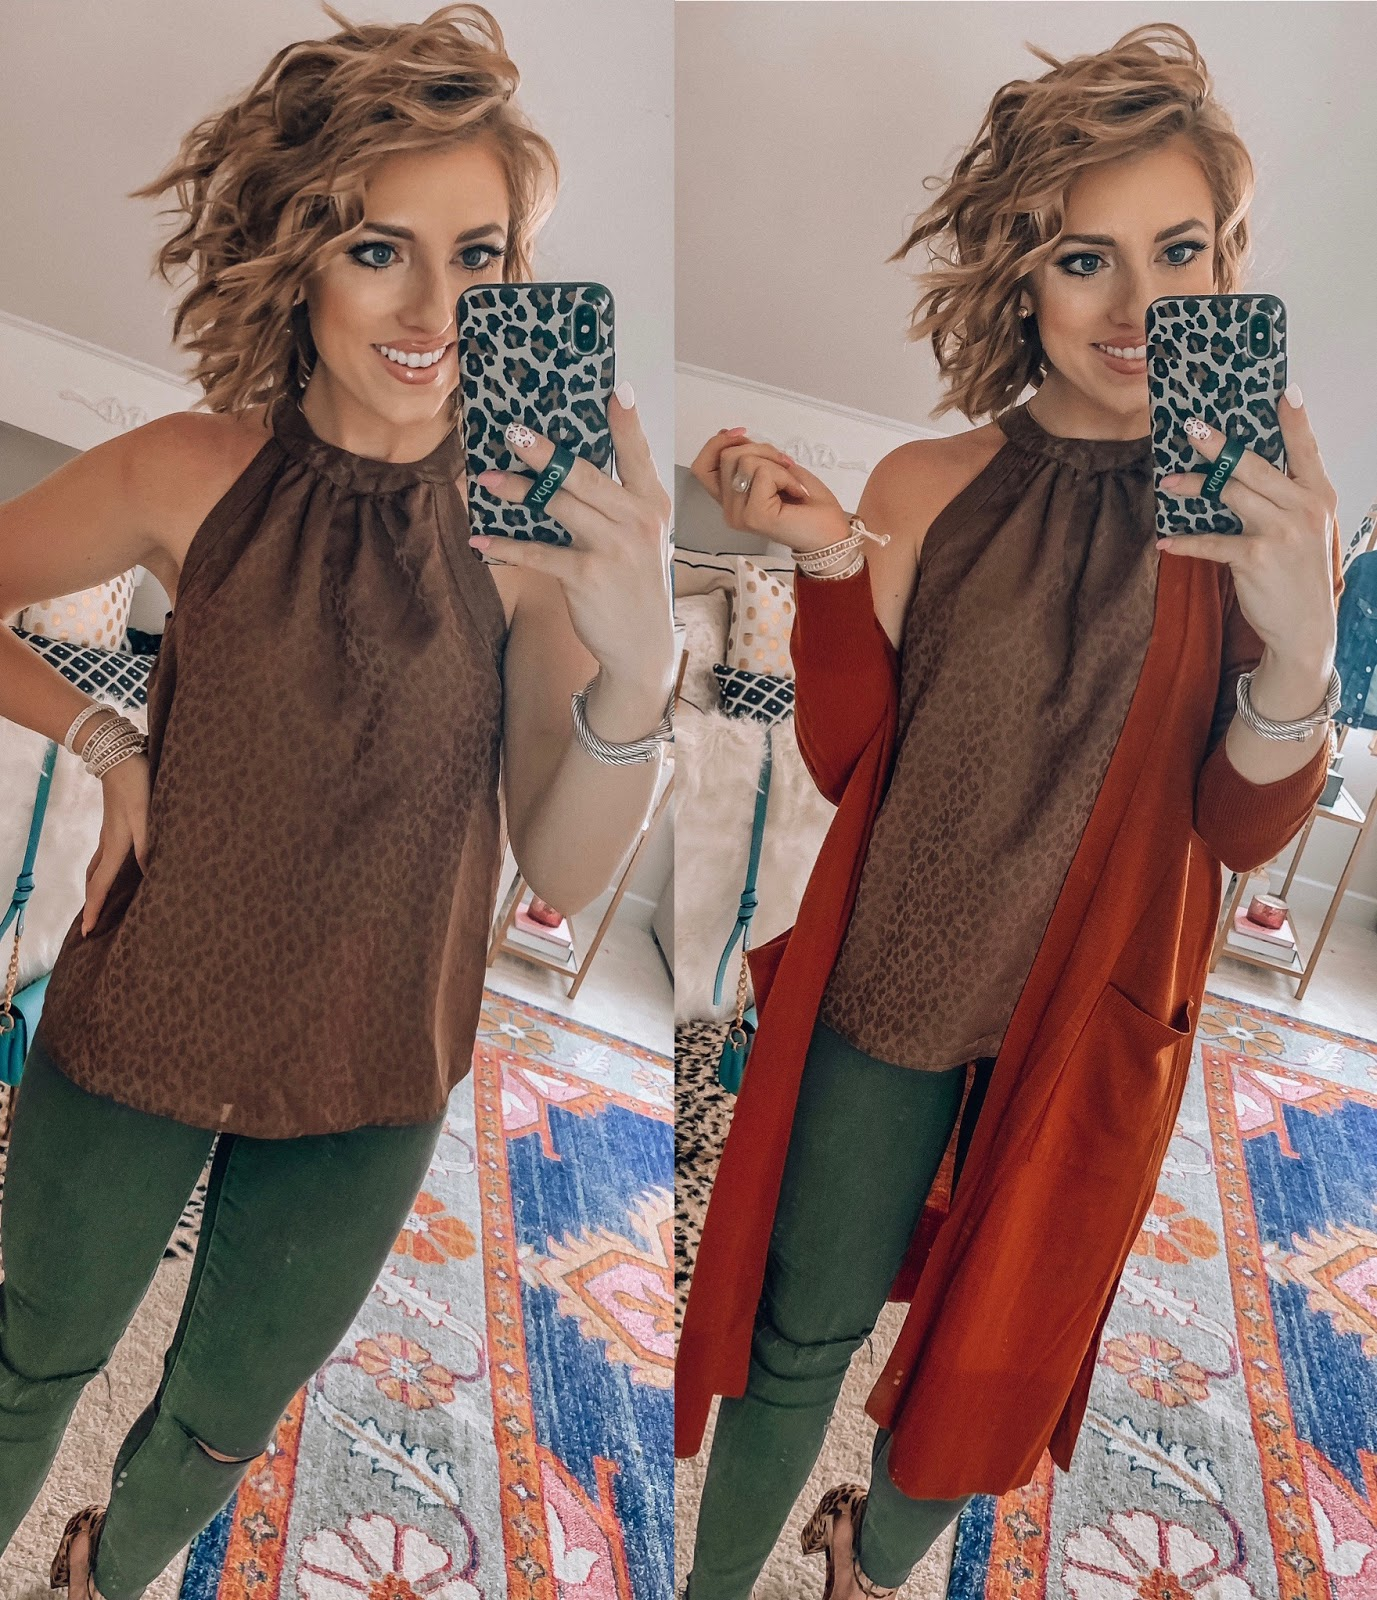 Target Fall Finds: Part 2 - Under $20 Leopard Halter Top Styled Two Ways with Olive Jeggings and Cardigan - Something Delightful Blog #fallfashion #leopard #pajamas #targetstyle #targetfallfinds